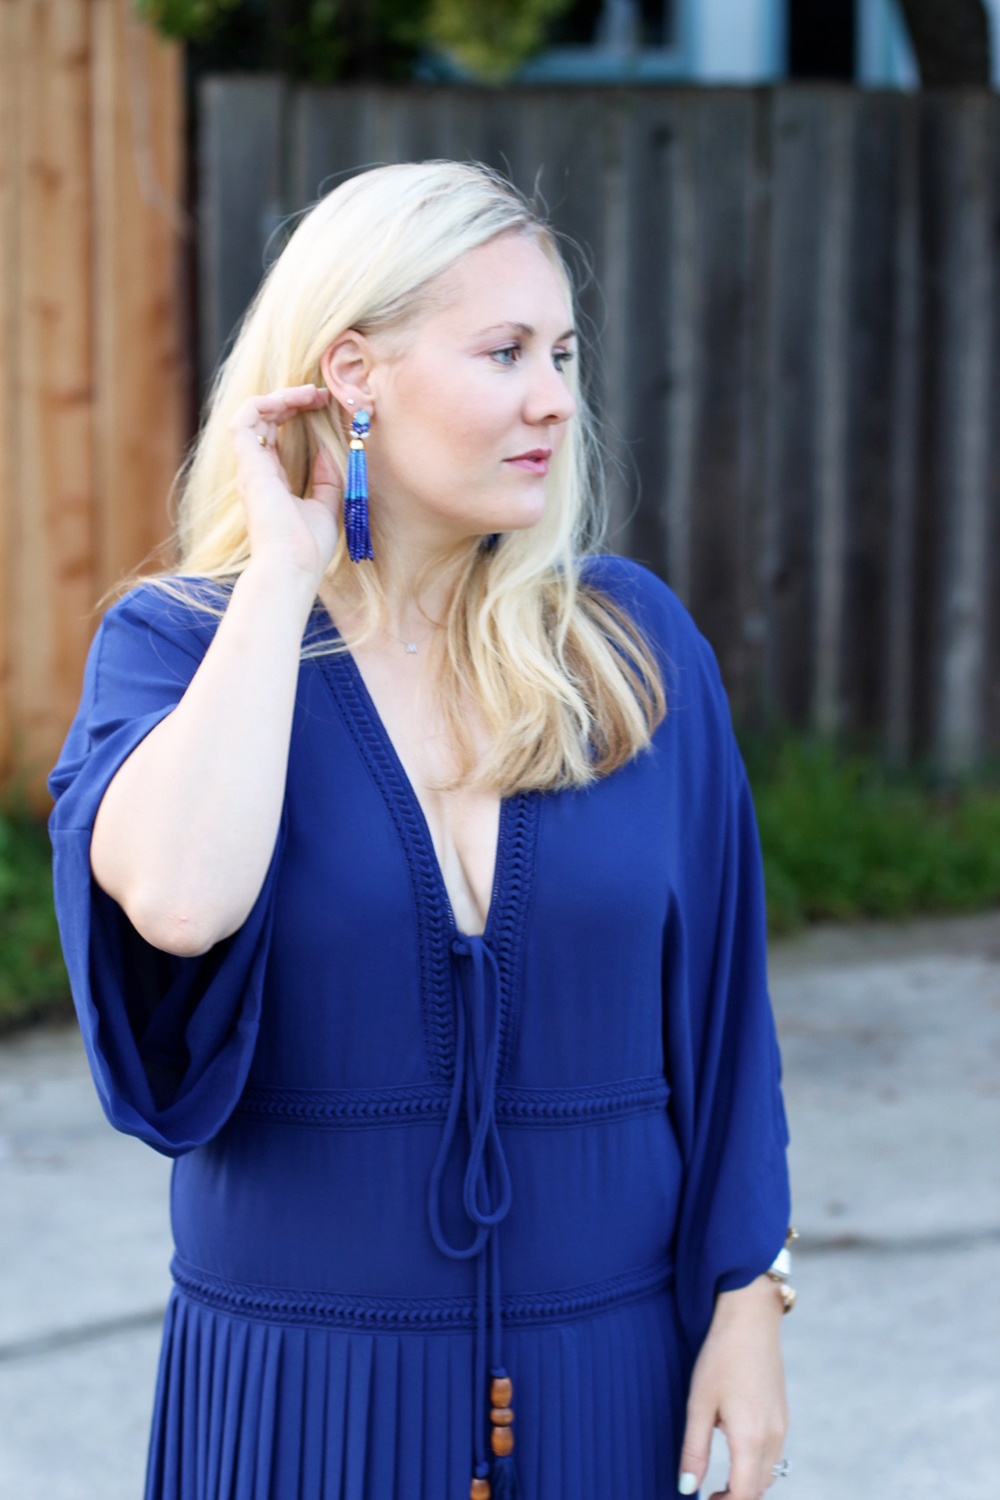 Plunging Neckline Drop Waist Dress-Blue Valentine-Outfit Inspiration-Veronique Branquinho-Have Need Want 3